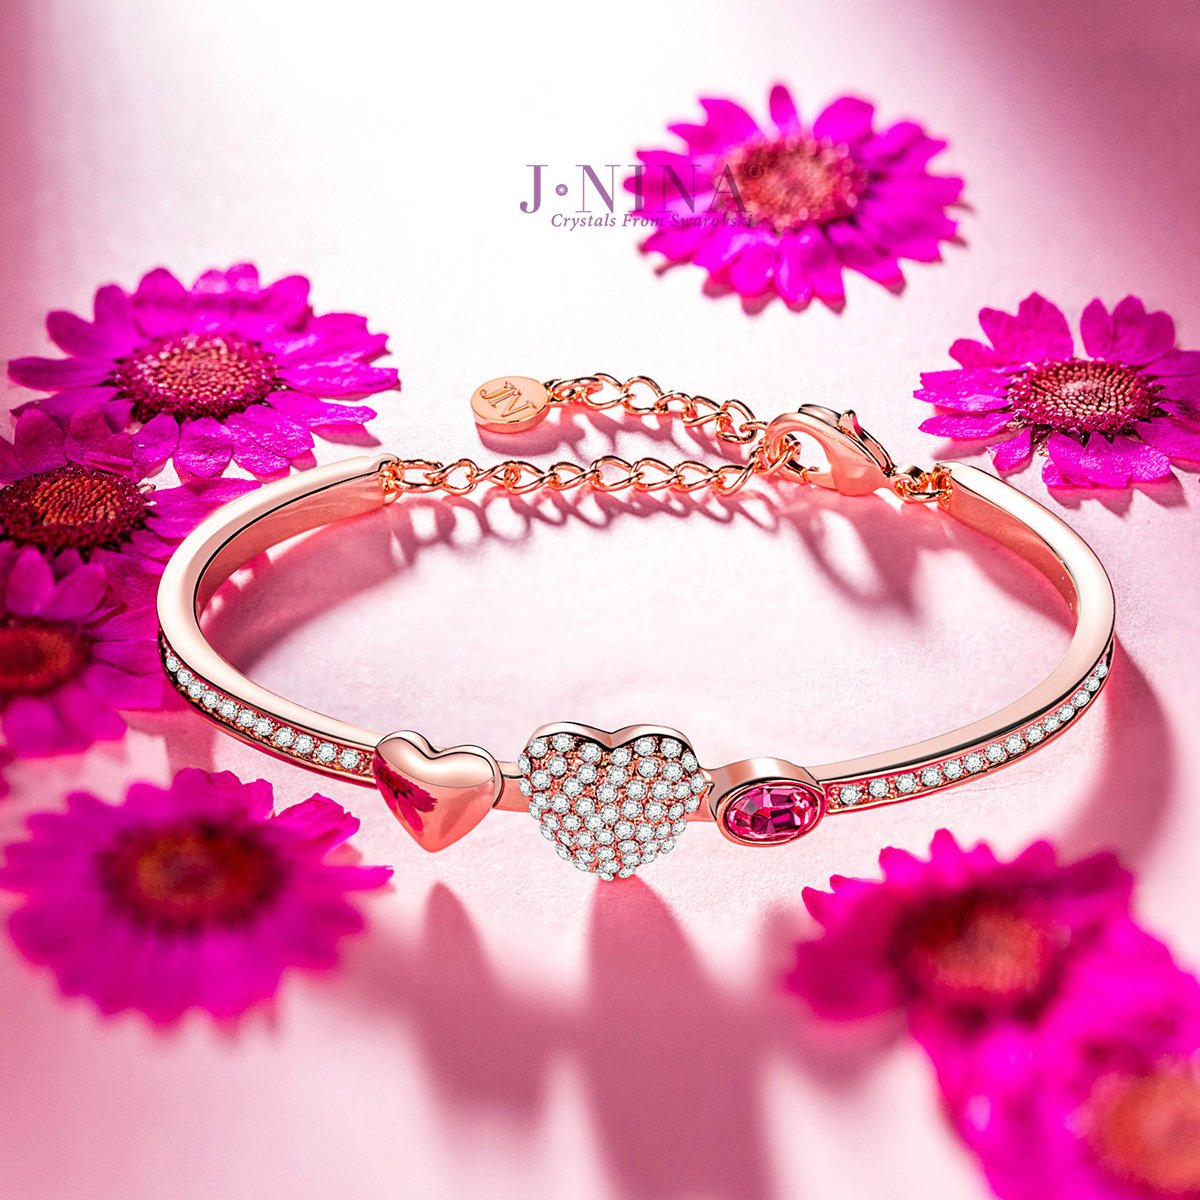 Amazon.com: J.NINA Sweet Lady Heart Bangle with Crystals from Swarovski,  Rose-Gold Plated Bracelet for Women On Anniversary Birthday Valentines Day:  Jewelry